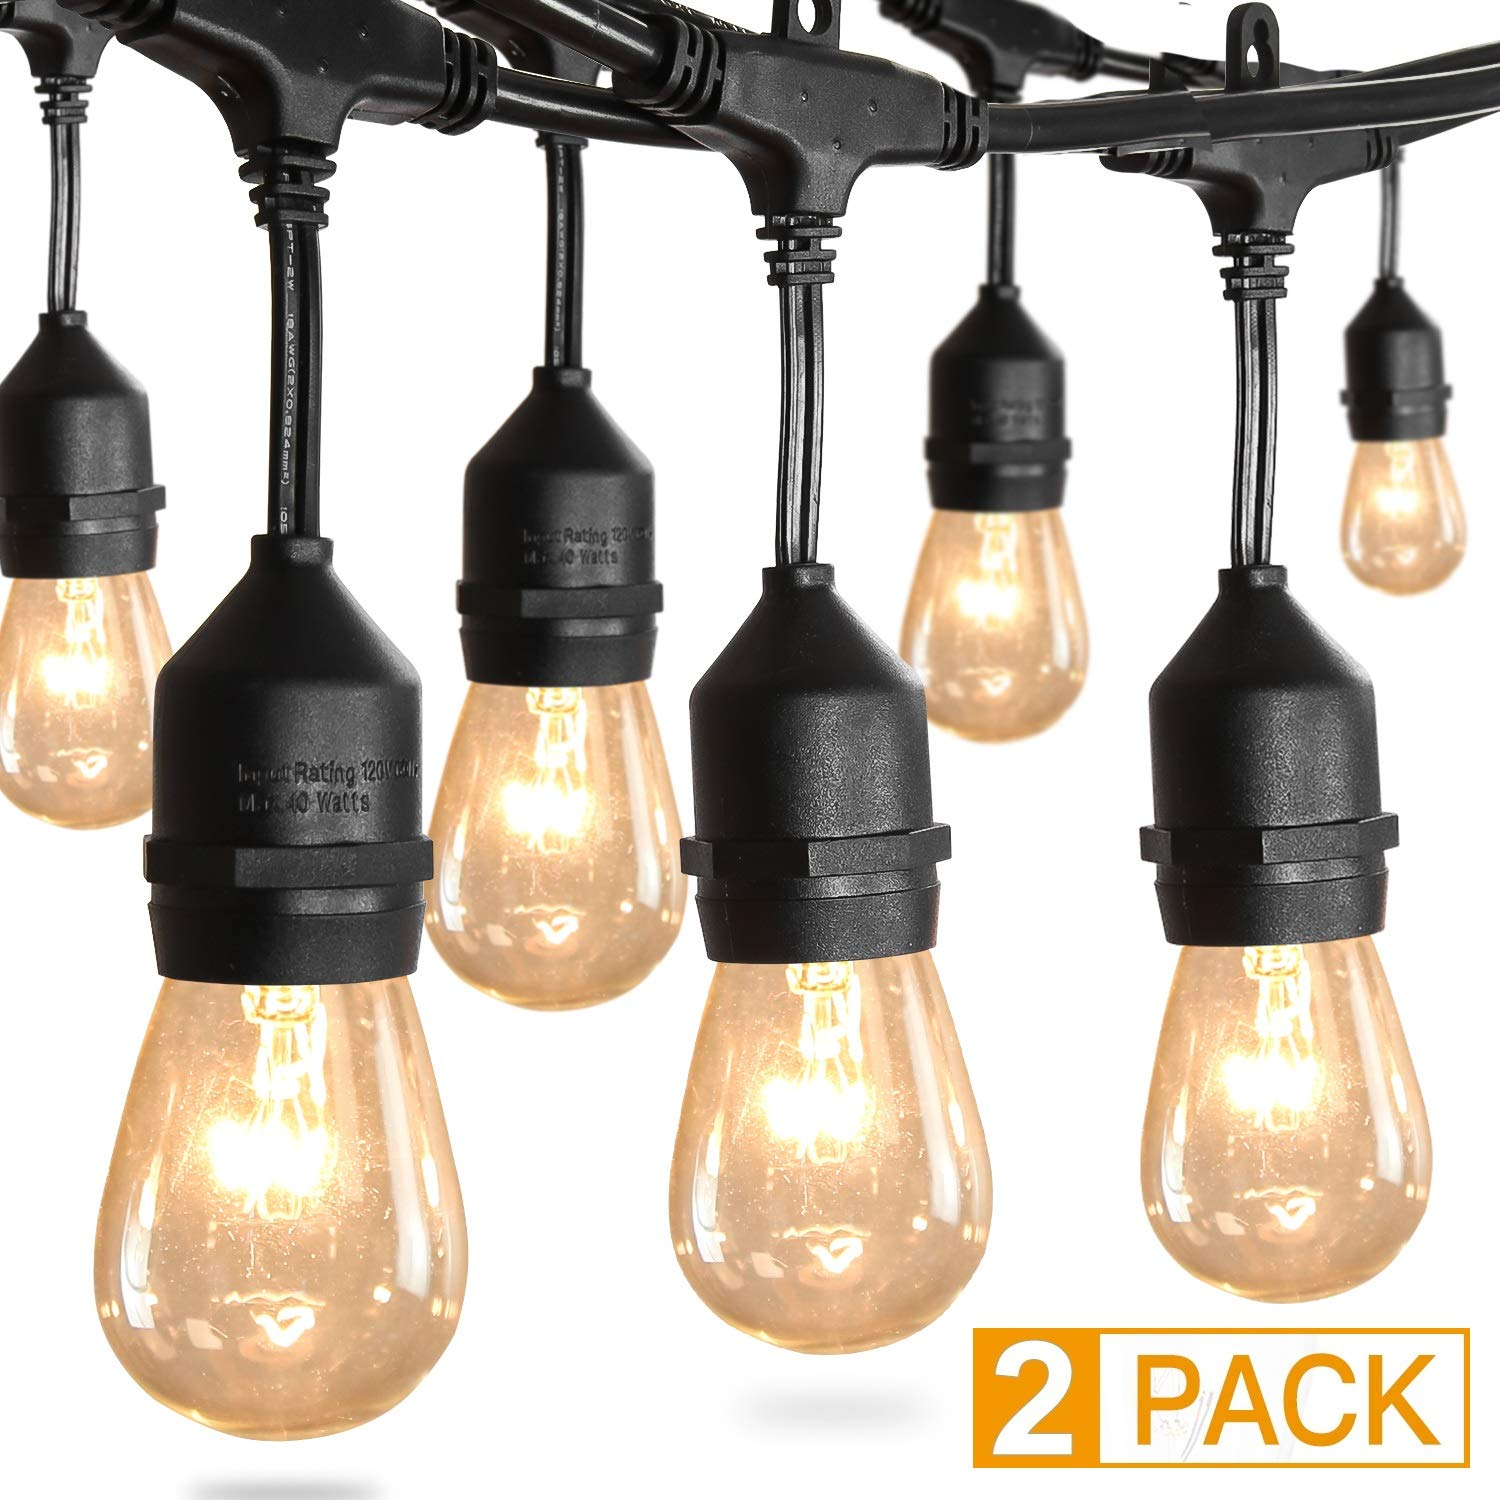 Amico 2 Pack 52FT Waterproof Outdoor String Lights with Hanging Edison Bulbs Commercial Grade Patio Café Lights - Great for Cafe Bistro Ambience in Your Garden